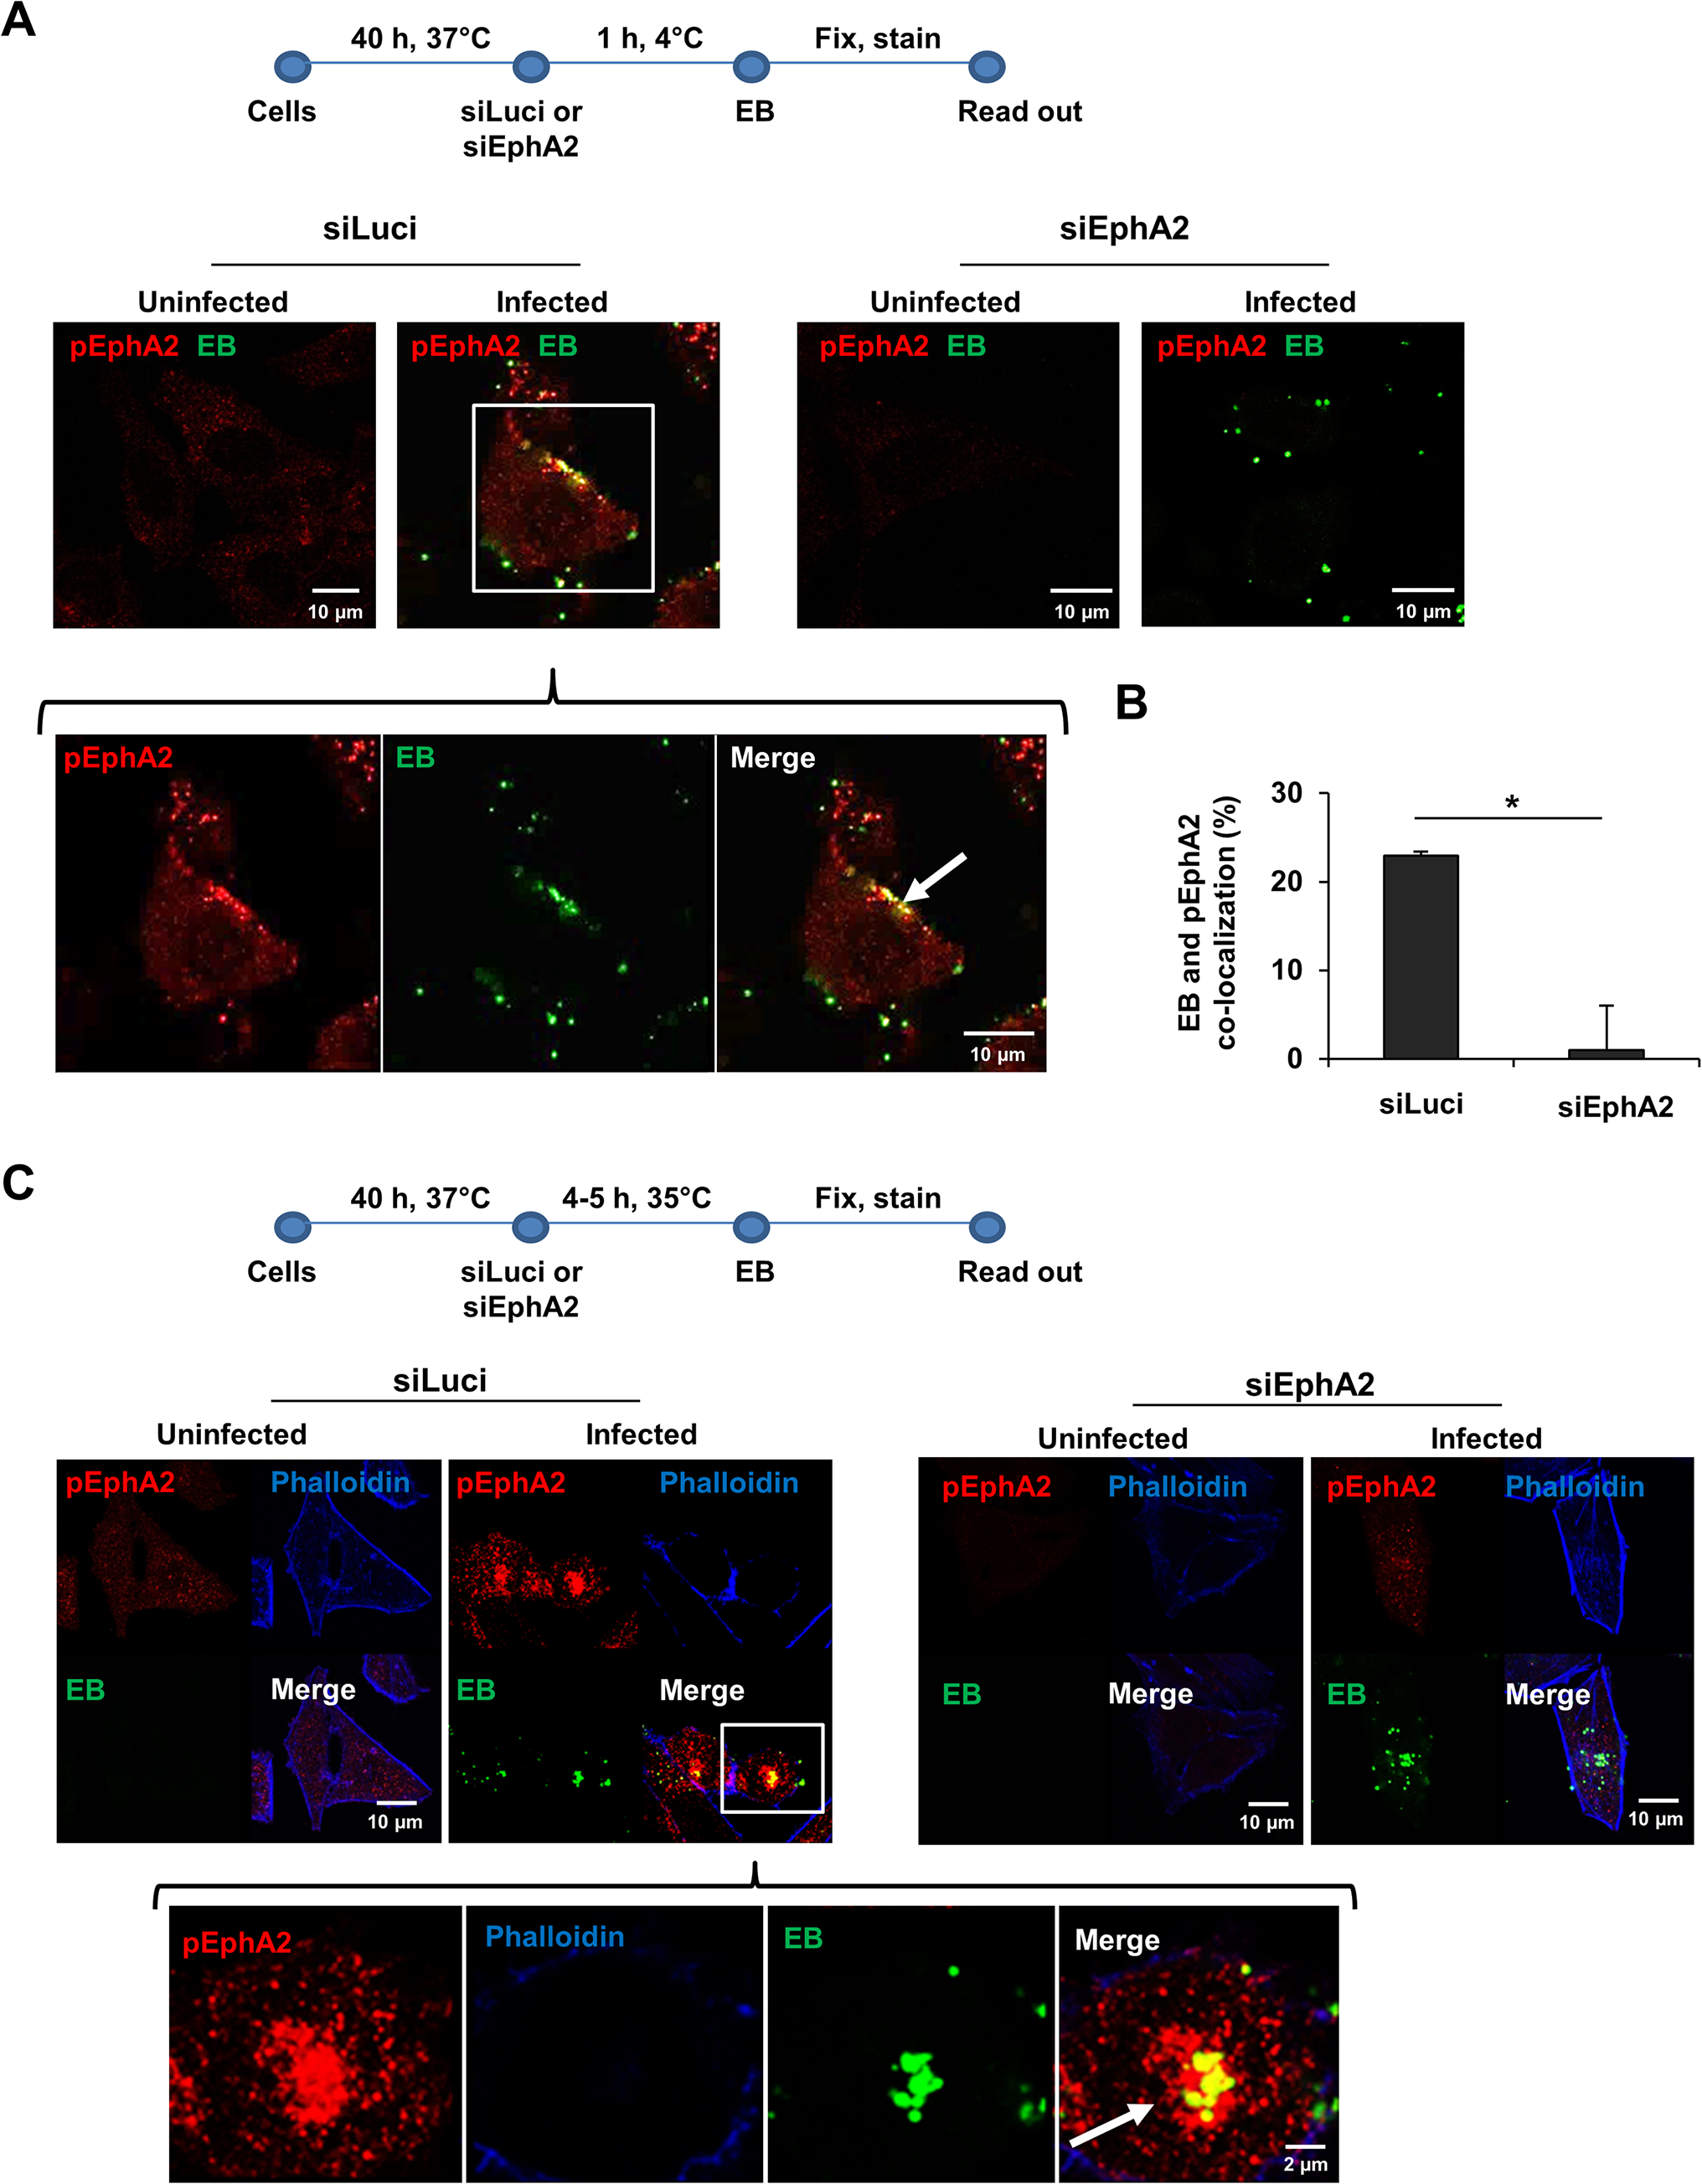 EphA2 activated upon early infection co-localizes with <i>Ctr</i>.